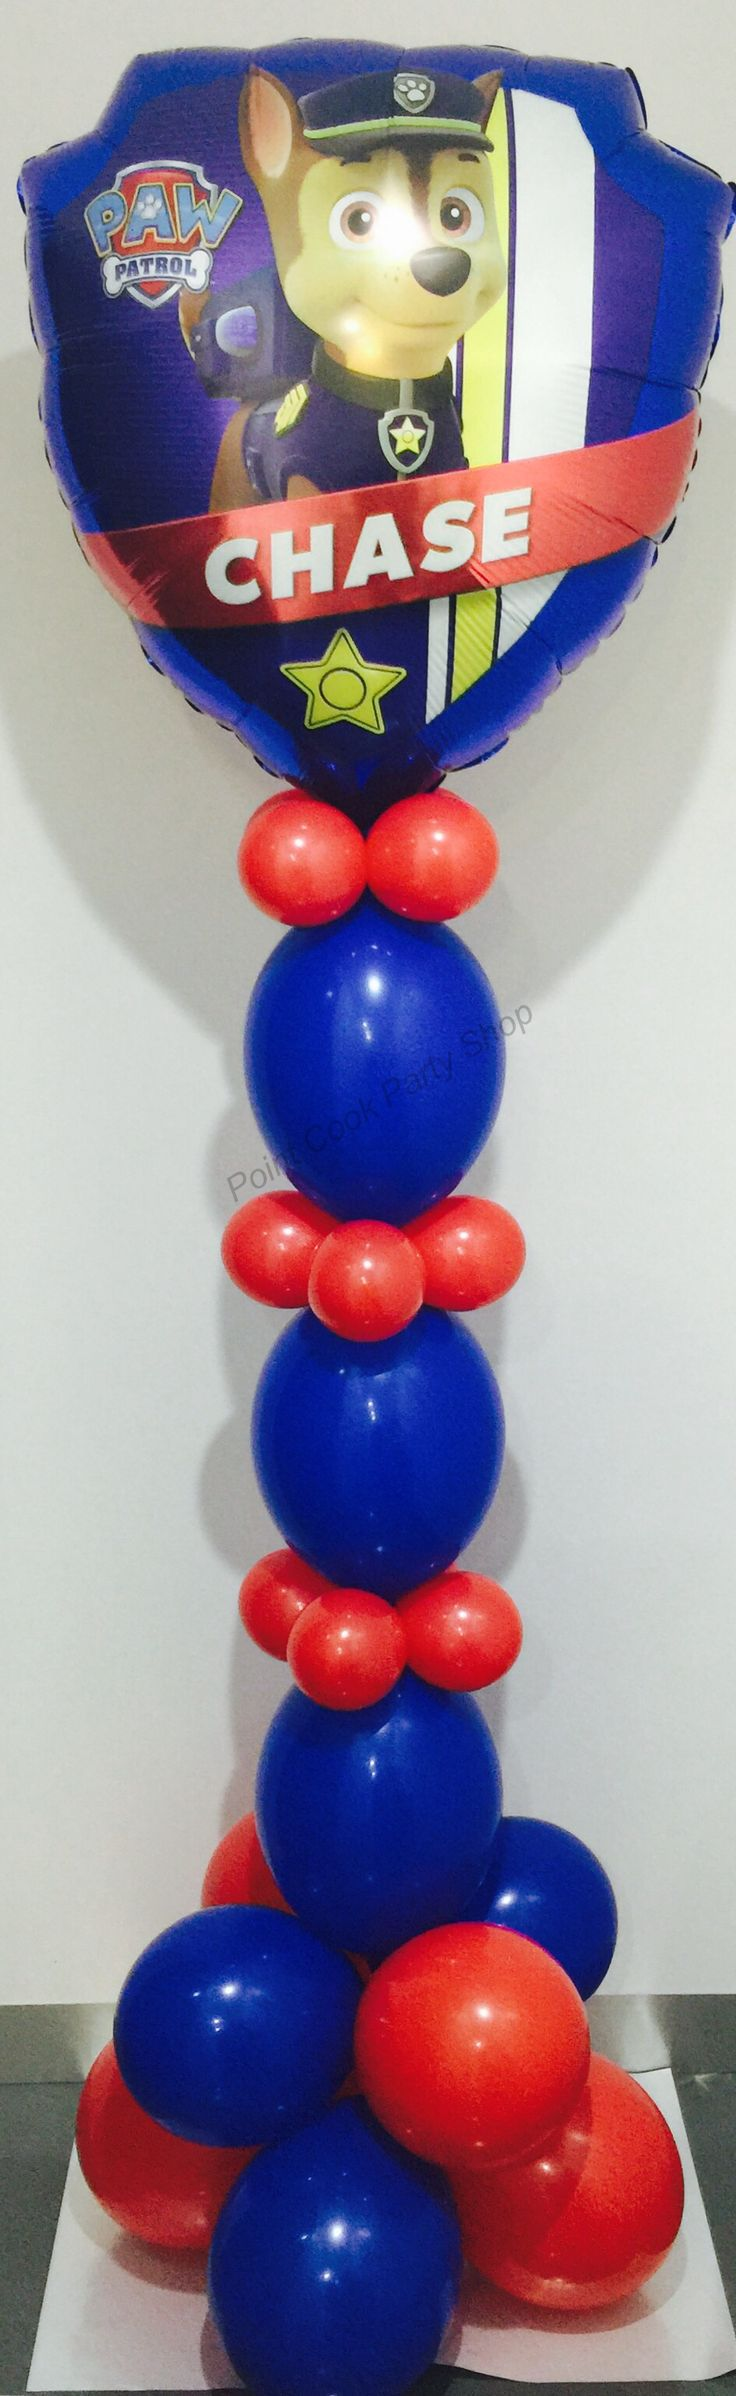 Paw patrol floor balloon decoration. #pointcookballoons